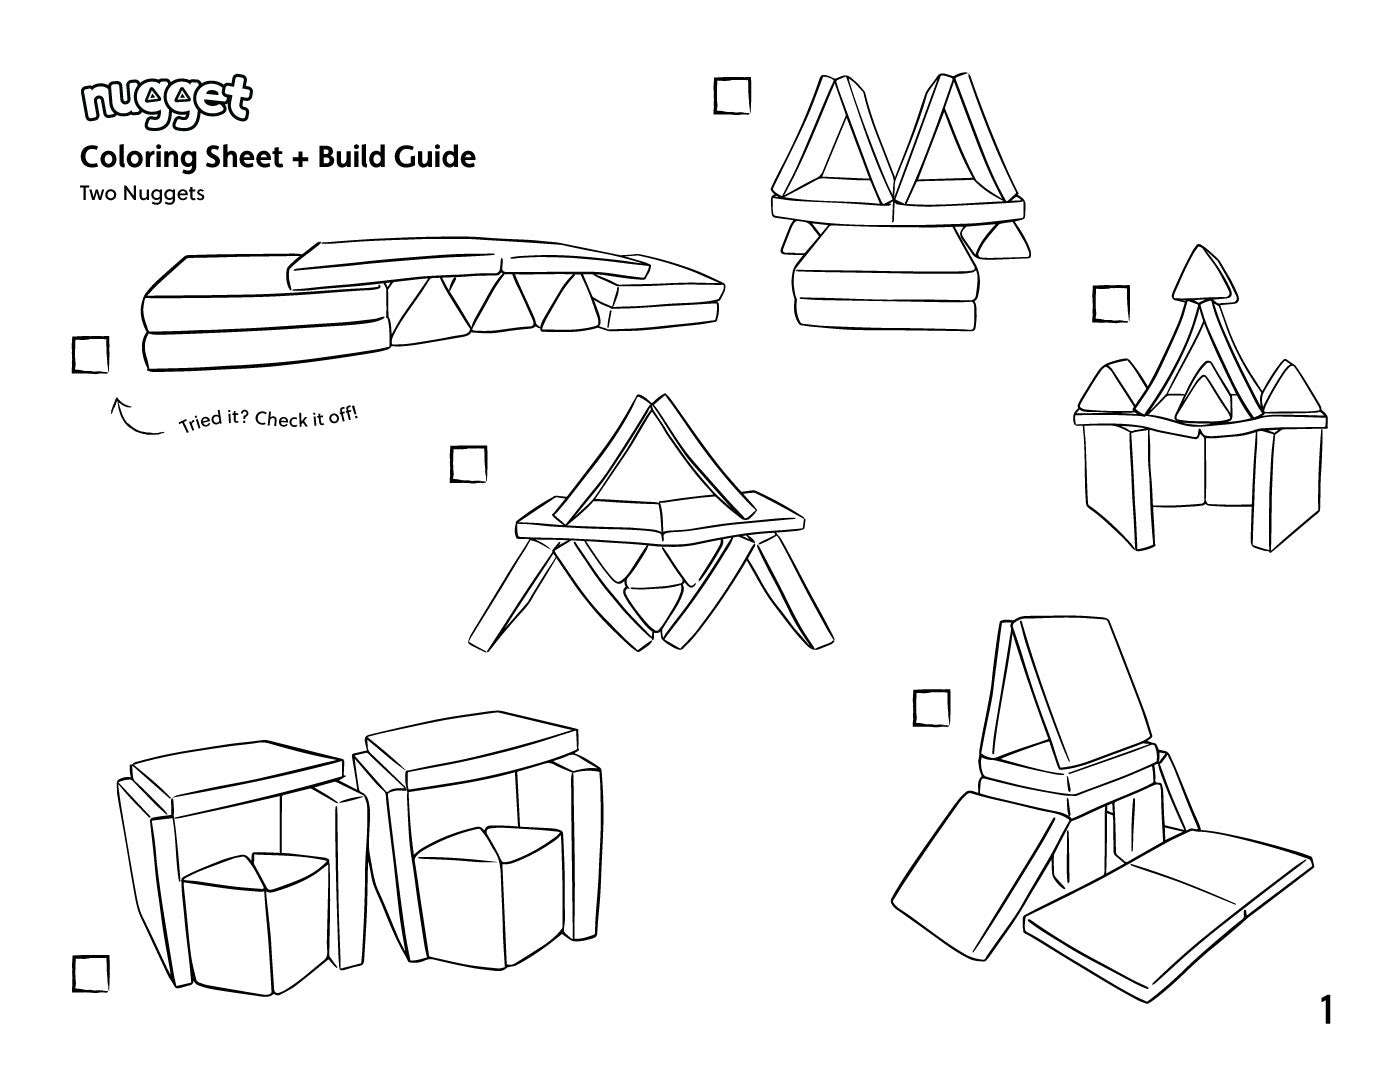 Coloring Sheets + Build Guides! - Nugget